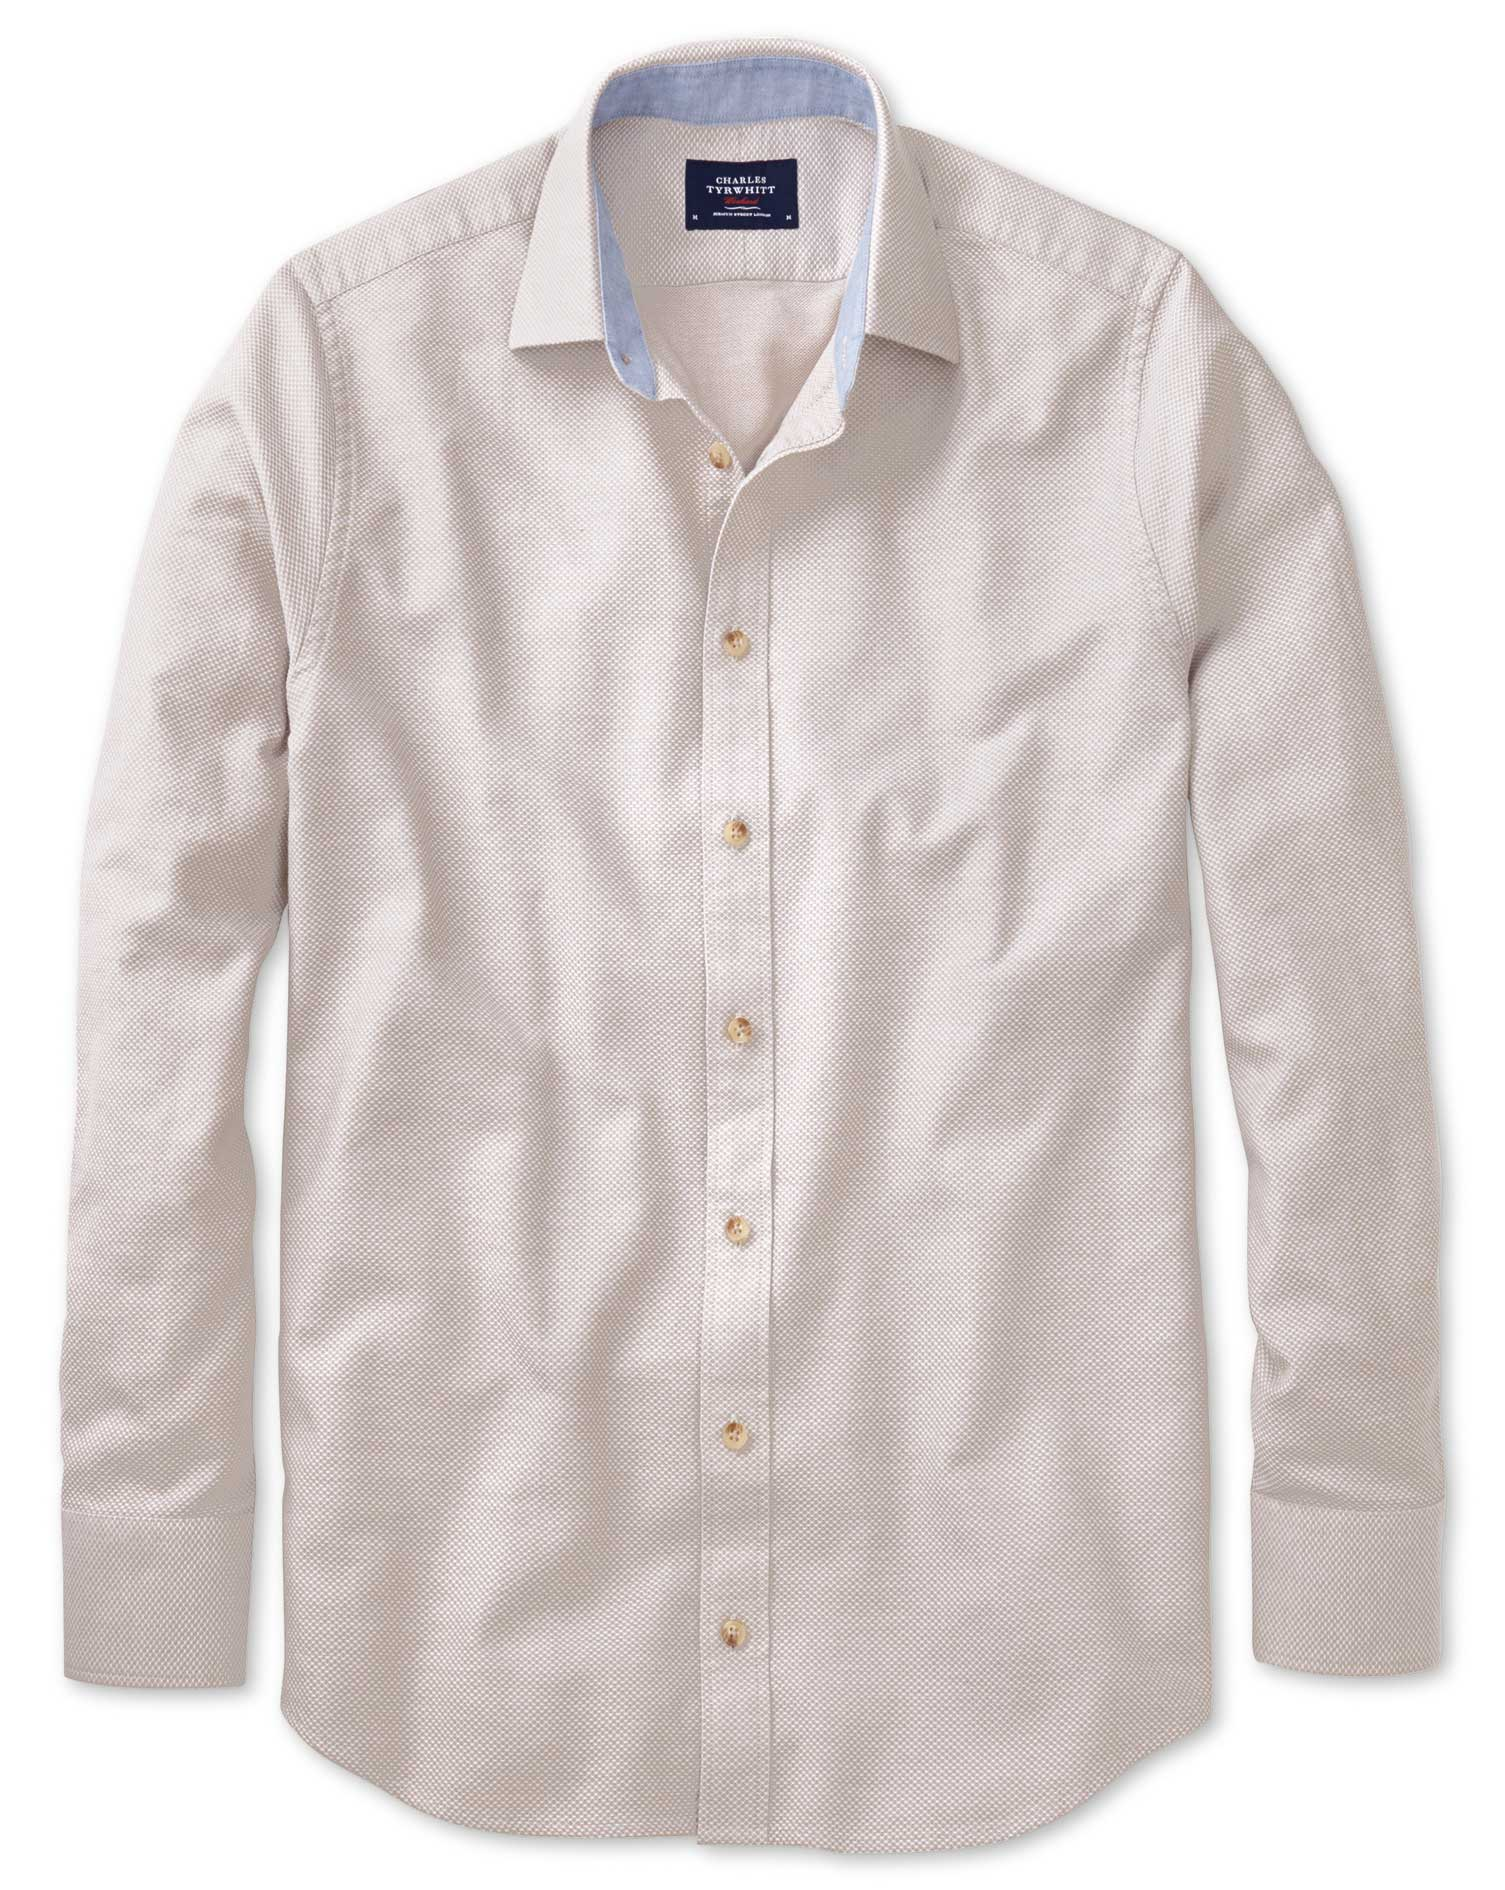 Classic Fit Stone Washed Textured Cotton Shirt Single Cuff Size Small by Charles Tyrwhitt